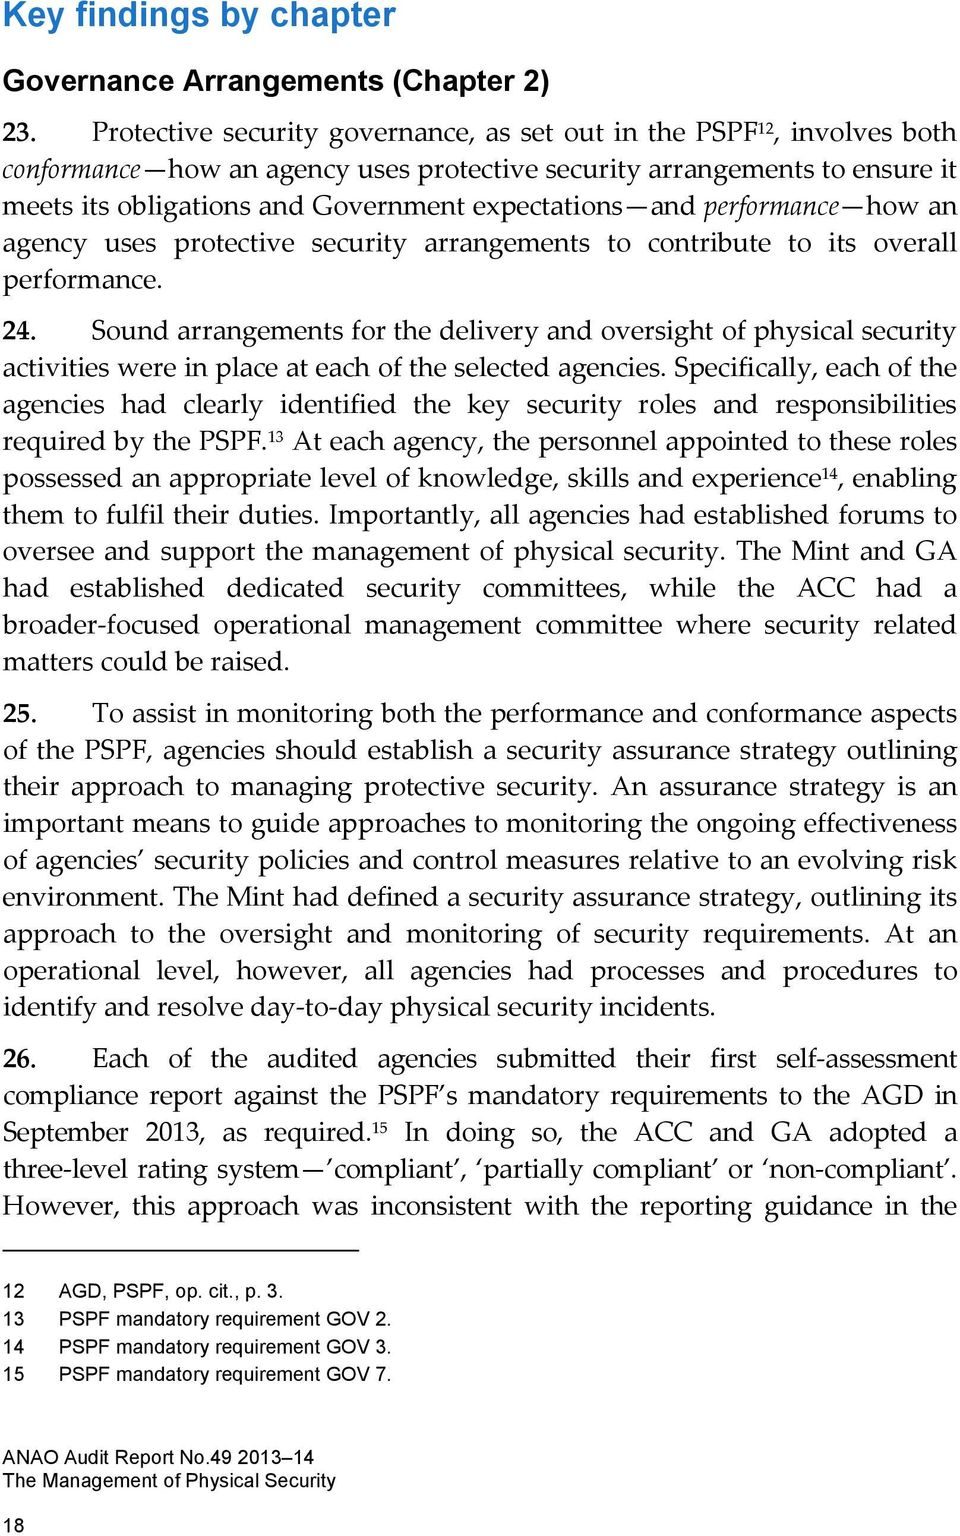 and performance how an agency uses protective security arrangements to contribute to its overall performance. 24.